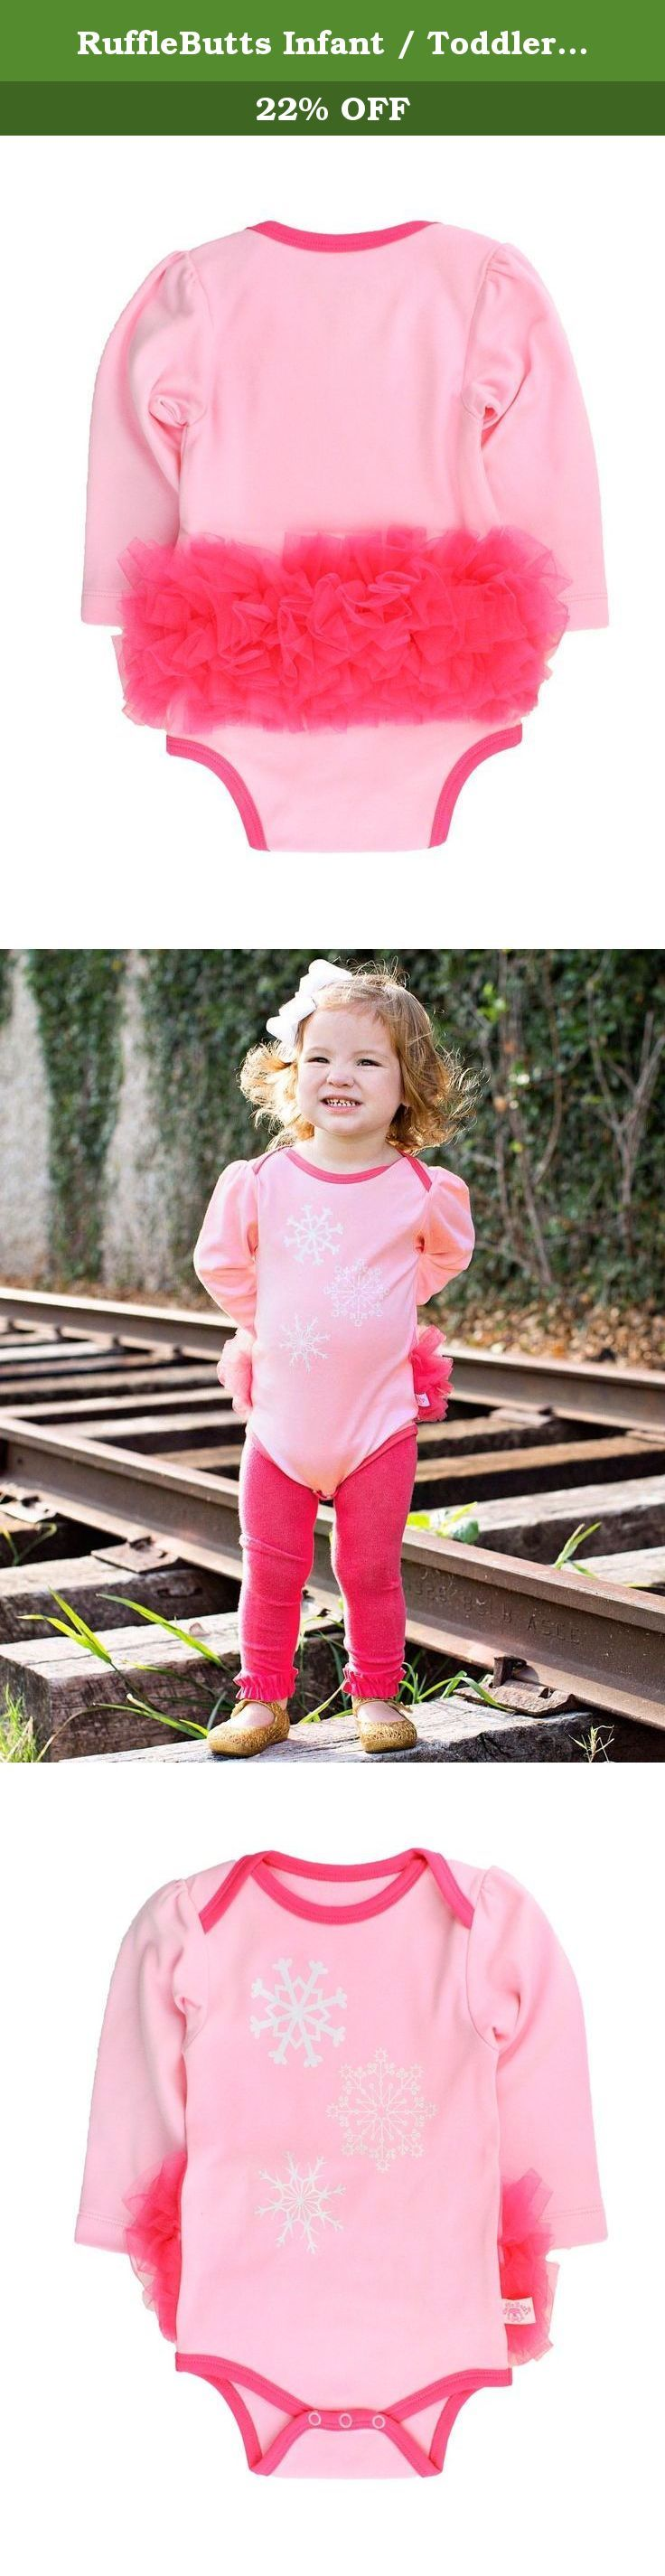 RuffleButts Infant / Toddler Girls Pink Sparkle Snowflake Bodysuit - Pink - 0-3m. This long sleeve one-piece bodysuit is a winter must-have! The sparkly snowflake graphic and mesh ruffles add extra flair to this soft and comfy bodysuit. The lap neckline and nickel-free snaps ensure quick and easy changing. Pair with RuffleButts Candy Footless Tights for a complete outfit!.